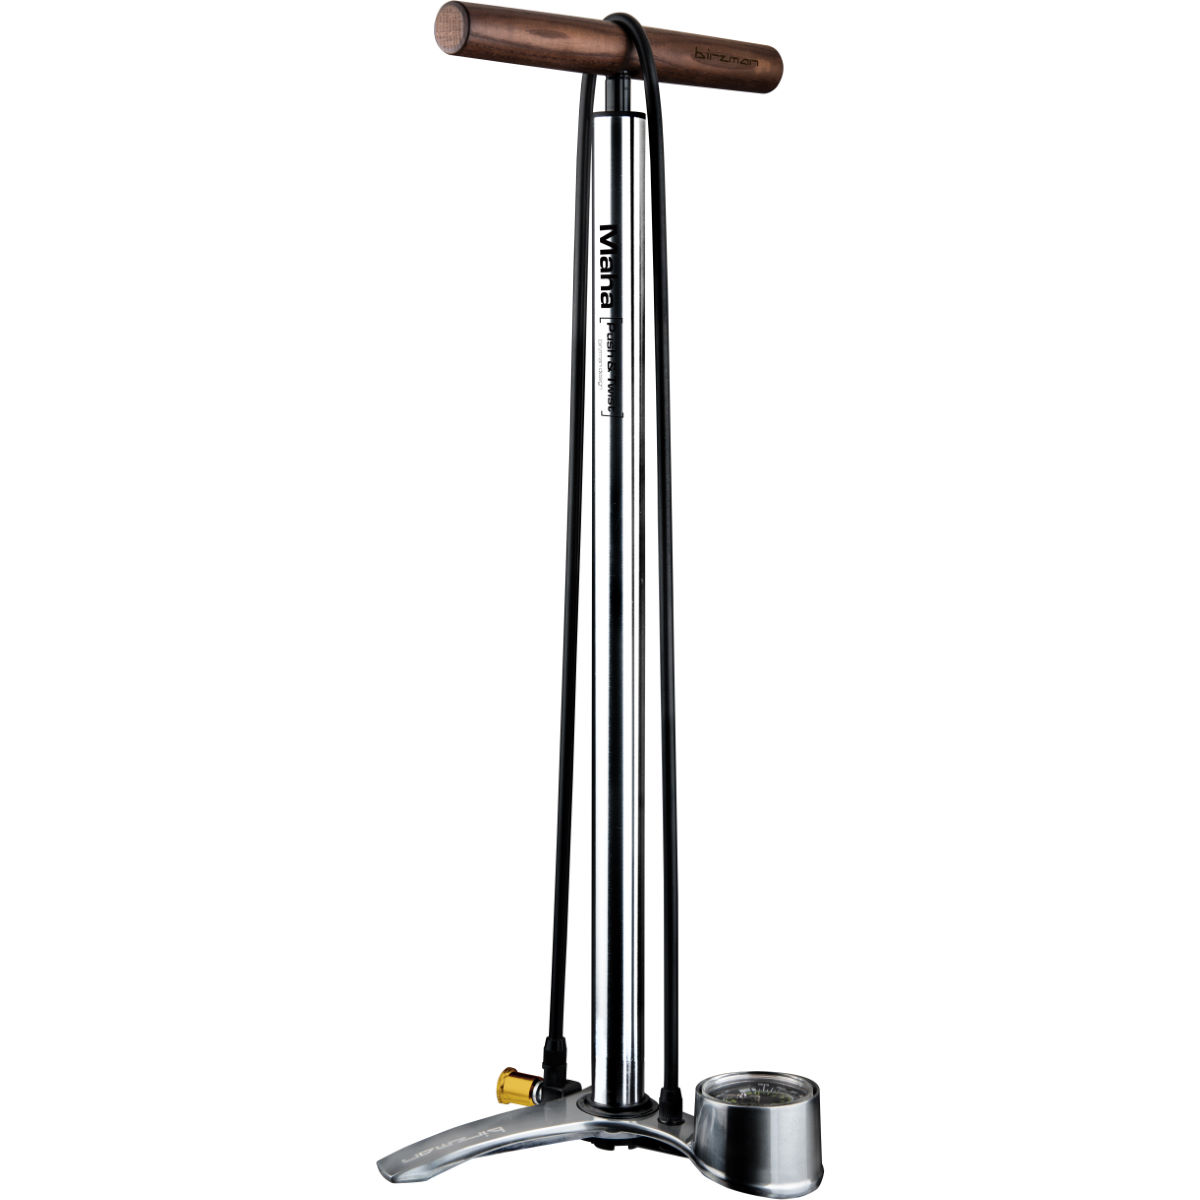 Birzman Maha Push & Twist III Floor Pump - Bombas de pie